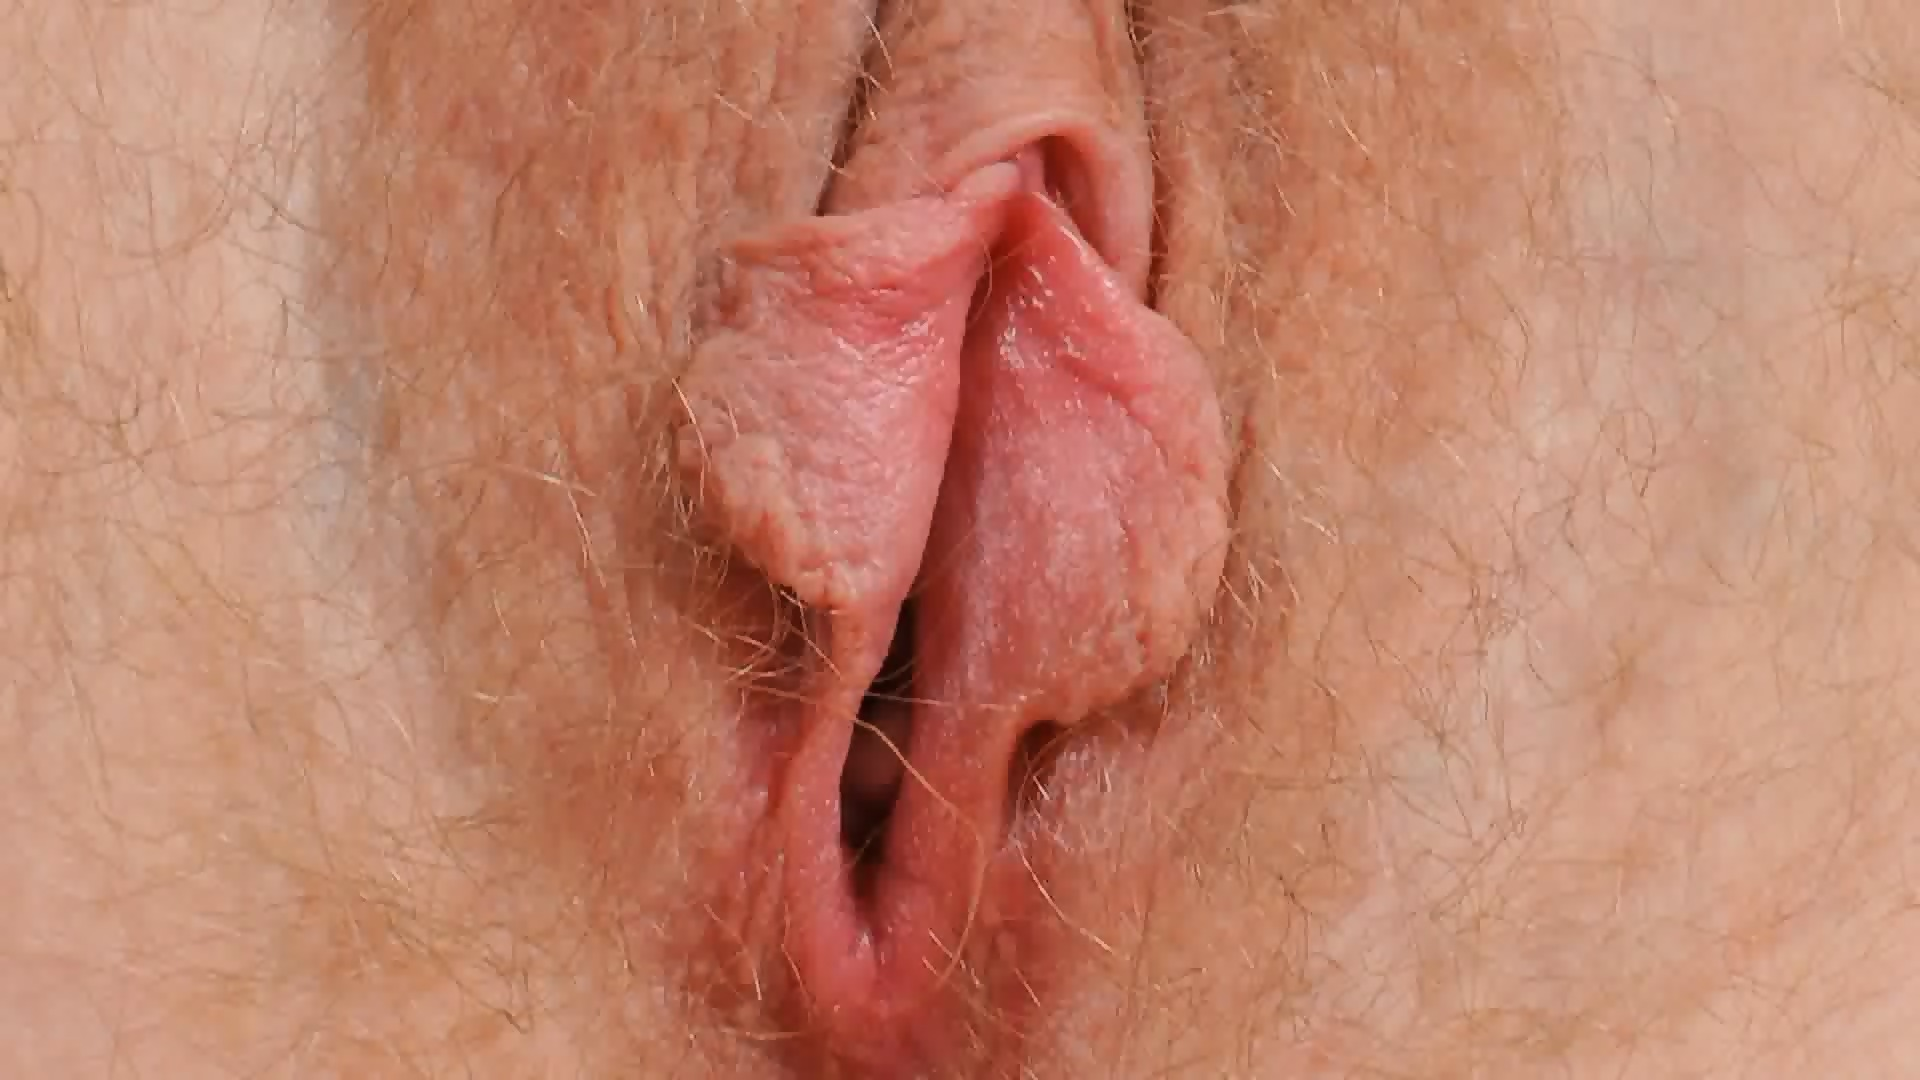 Have appeared hd porn close up remarkable, the